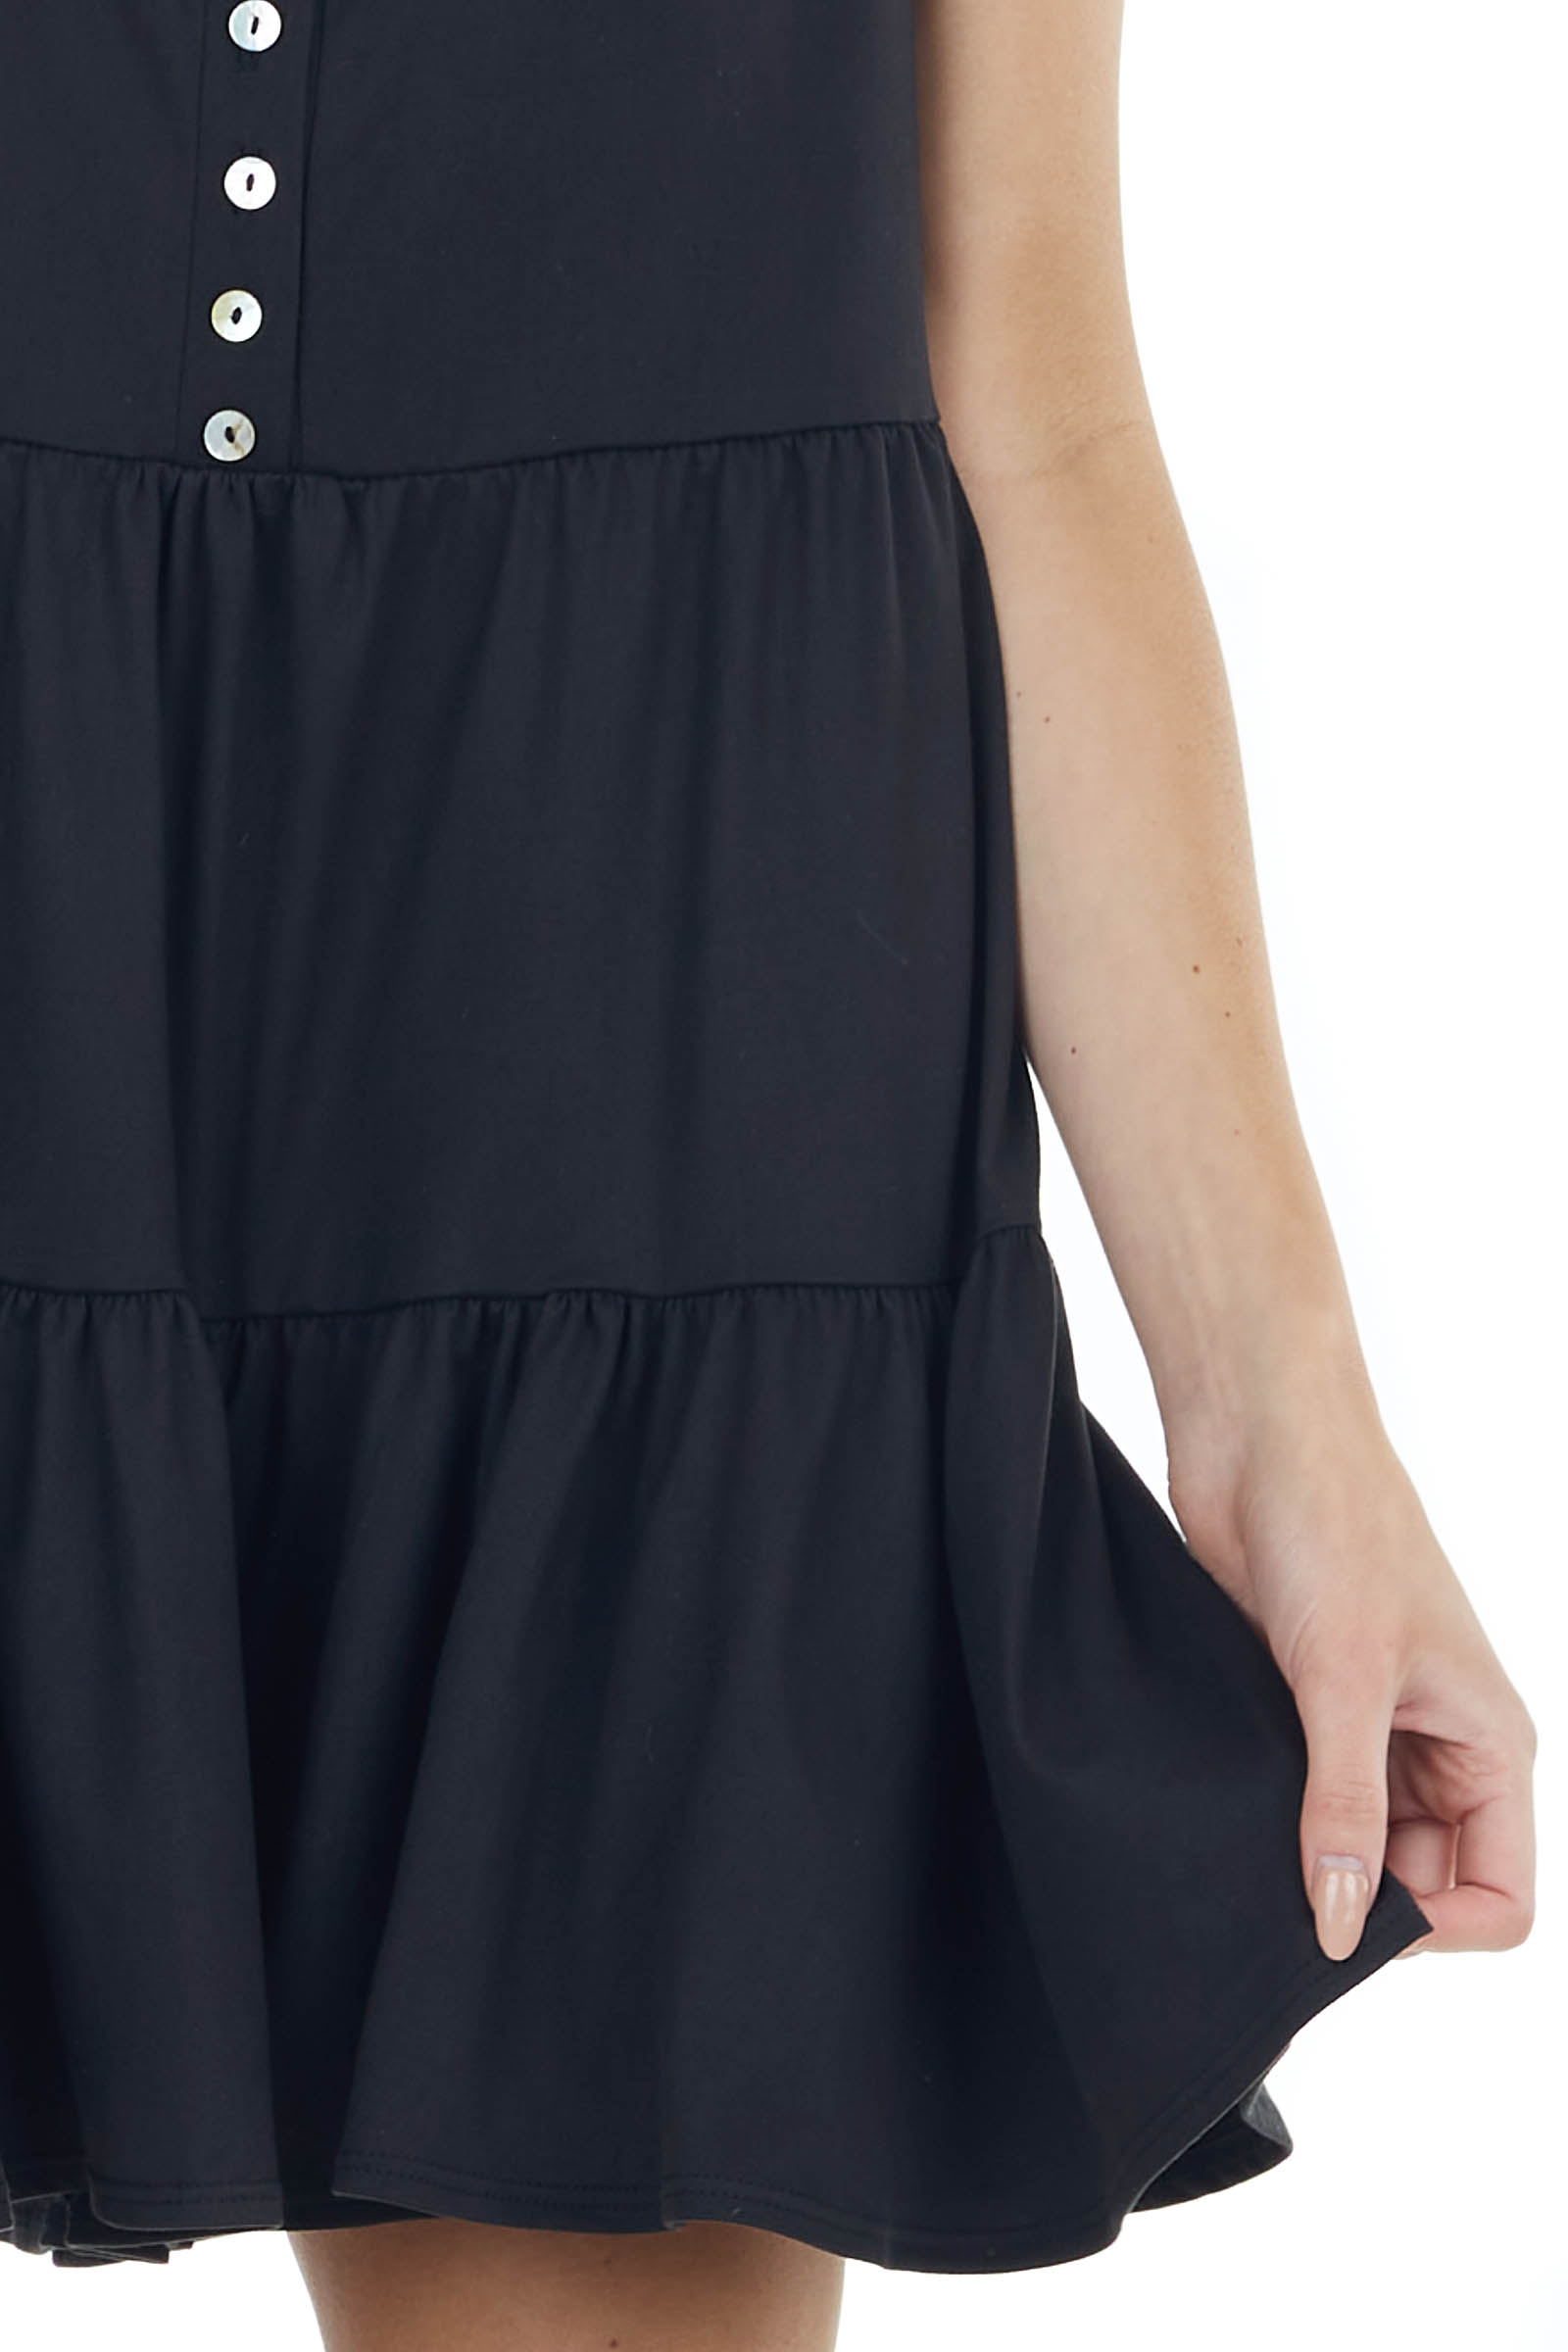 Black Sleeveless Tiered Romper with Front Button Detail